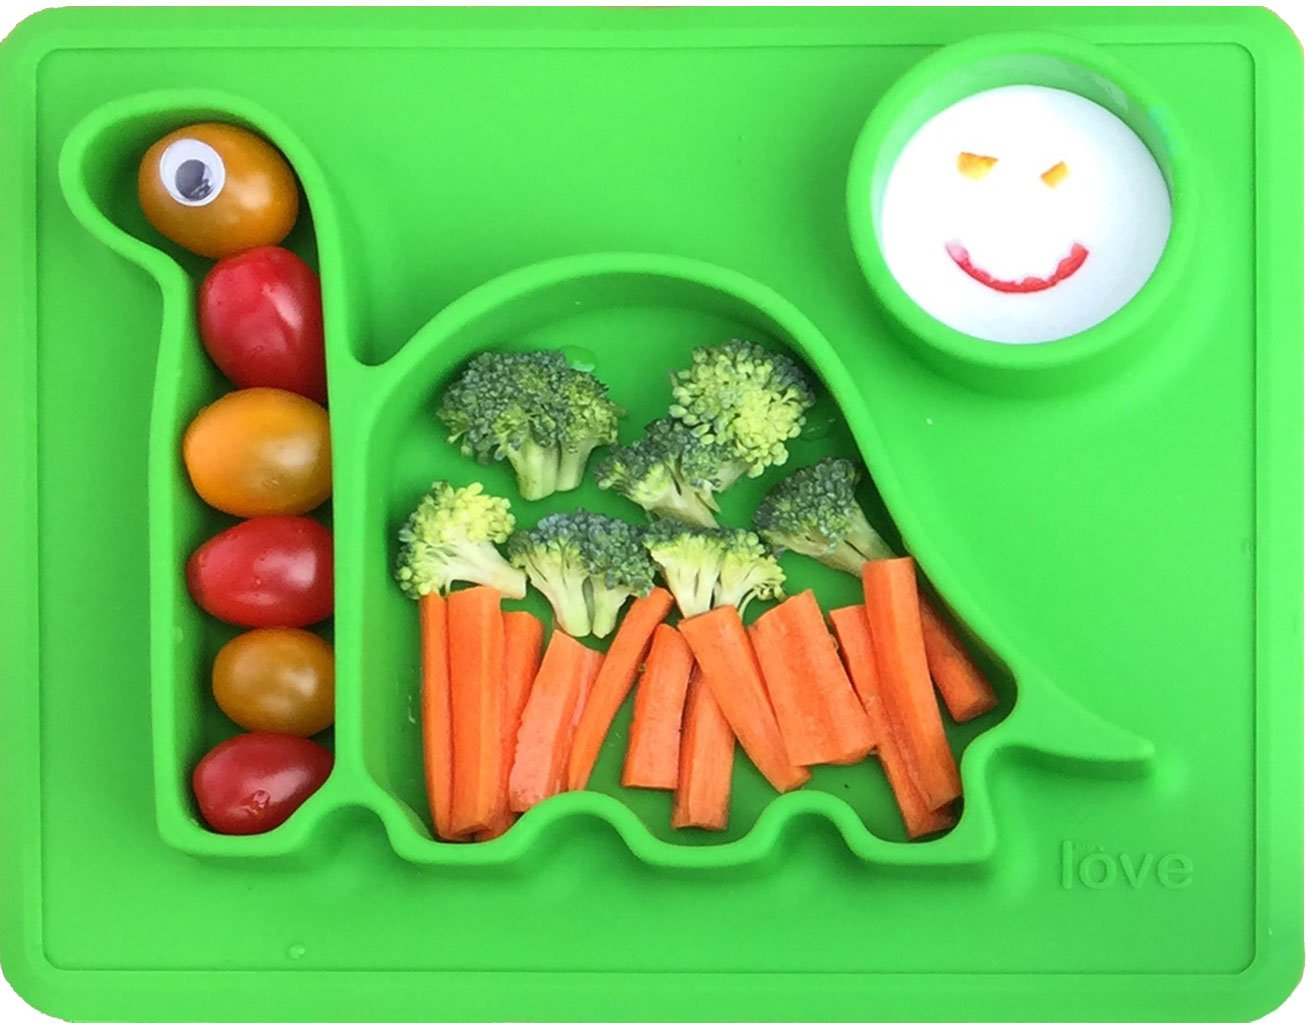 Silicone Placemat - Toddler Plates'' The Happy Good Dino PAD'' from Freezer to Microwave to Table. Fits in a Ziplock Bag, 3% is donated to The Buddy Bench Program.